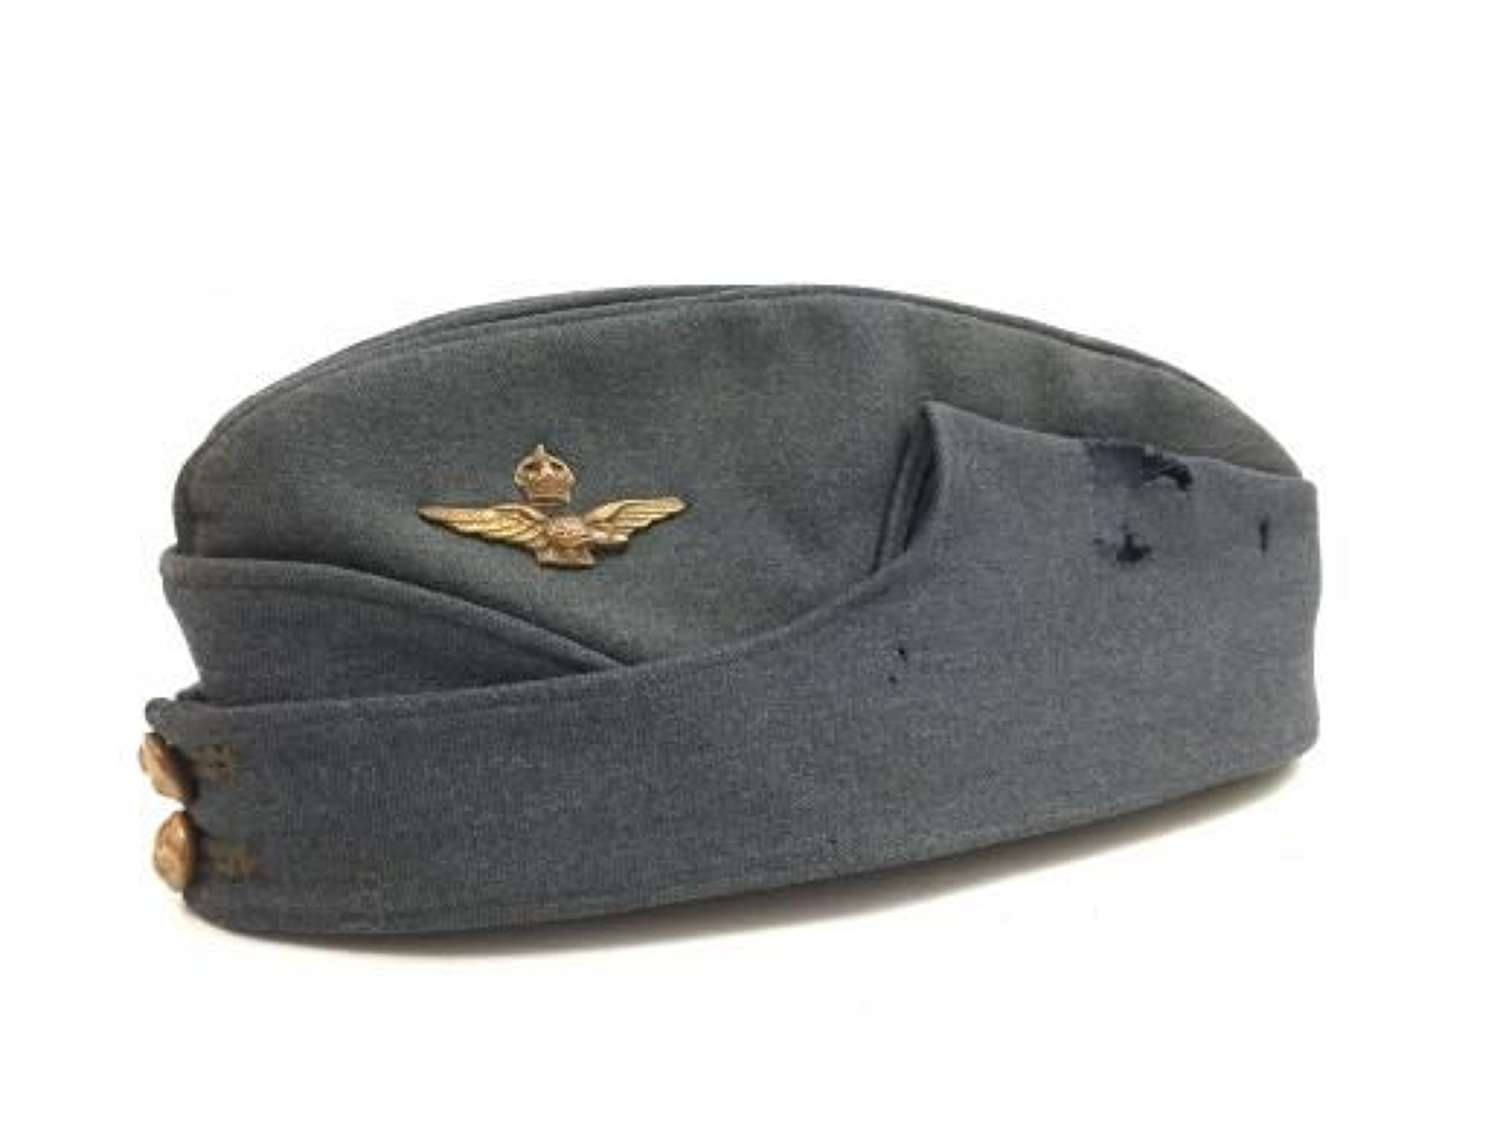 Original WW2 RAF Officers Forage Cap